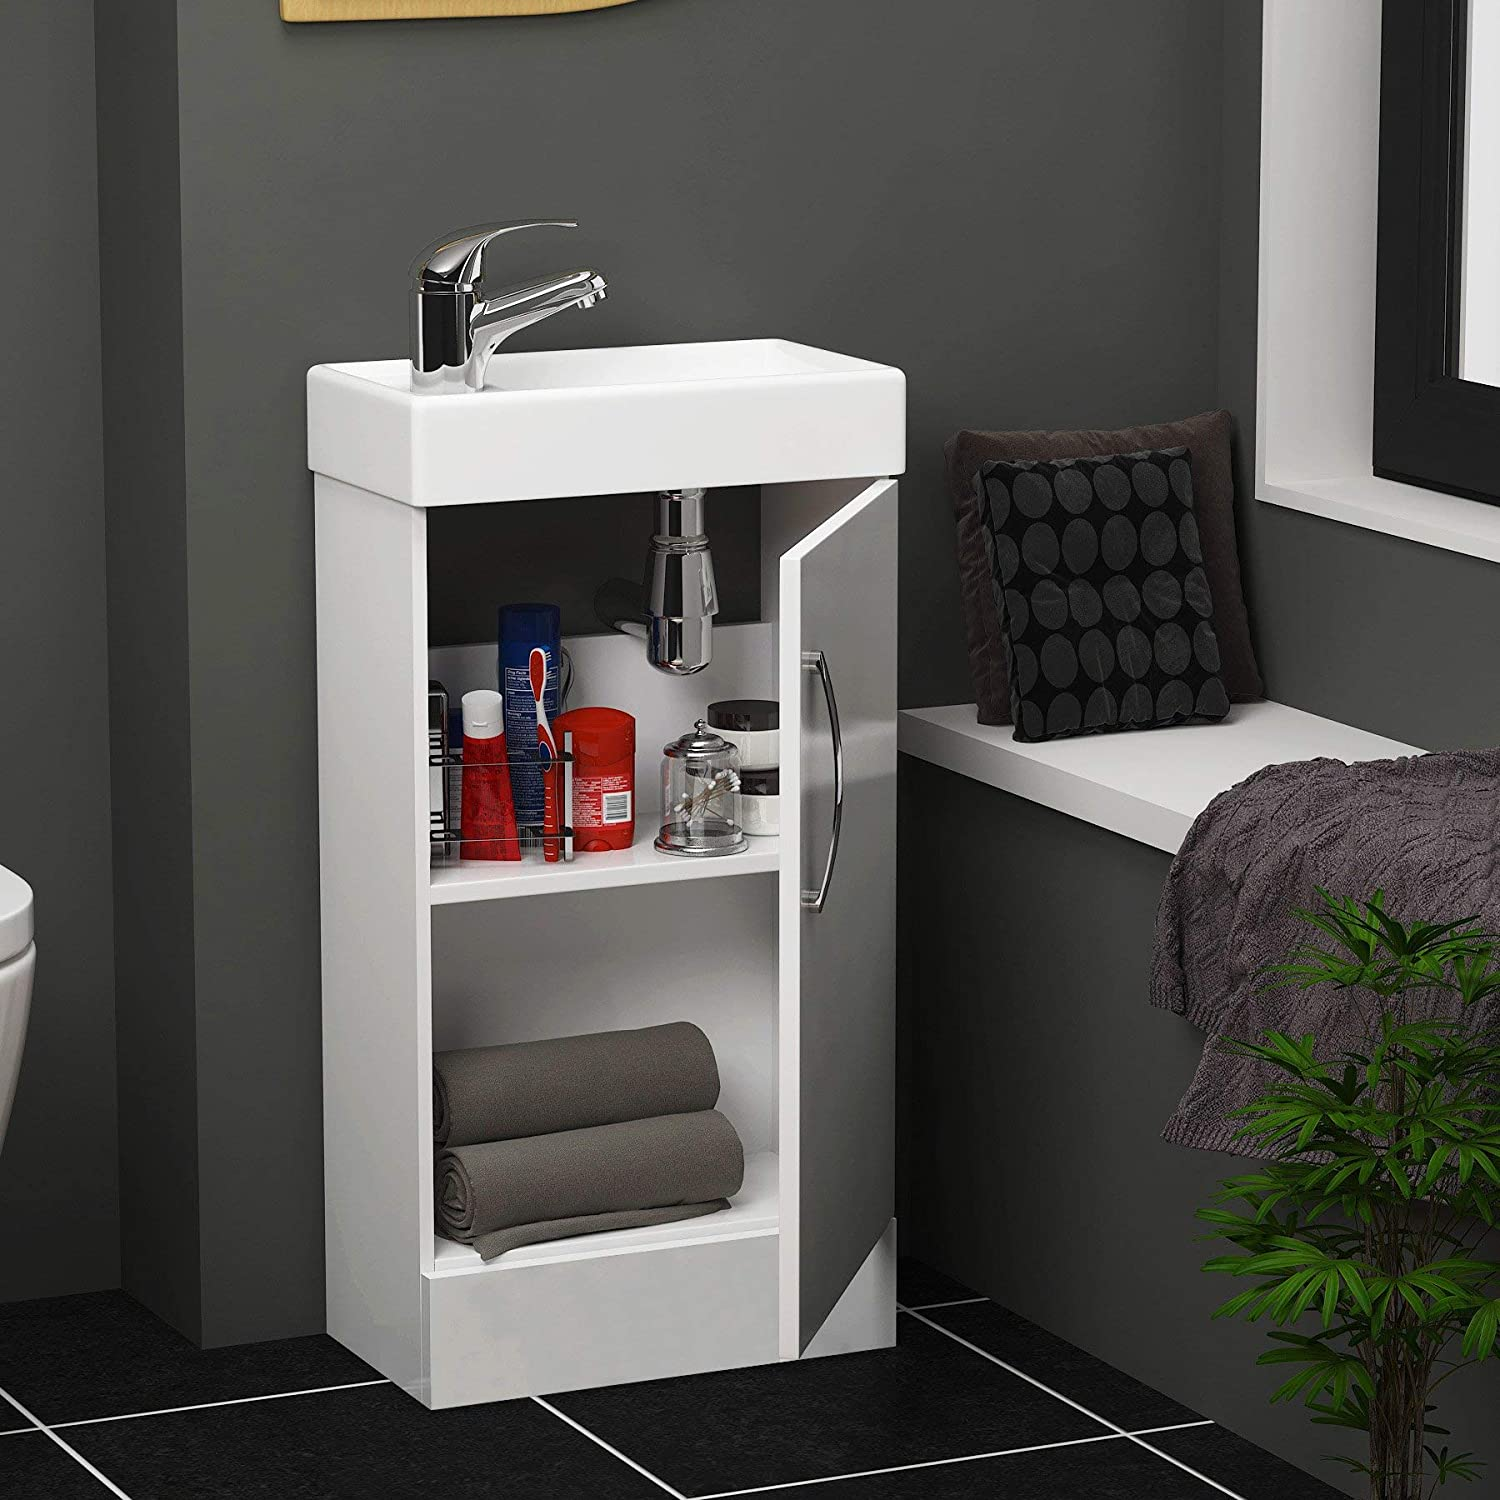 Modern Bathroom Vanity Unit 400mm 1-Door Wall Hung Storage Cabinet Basin Sink Gloss White Cloakroom Gloss White Floor Standing